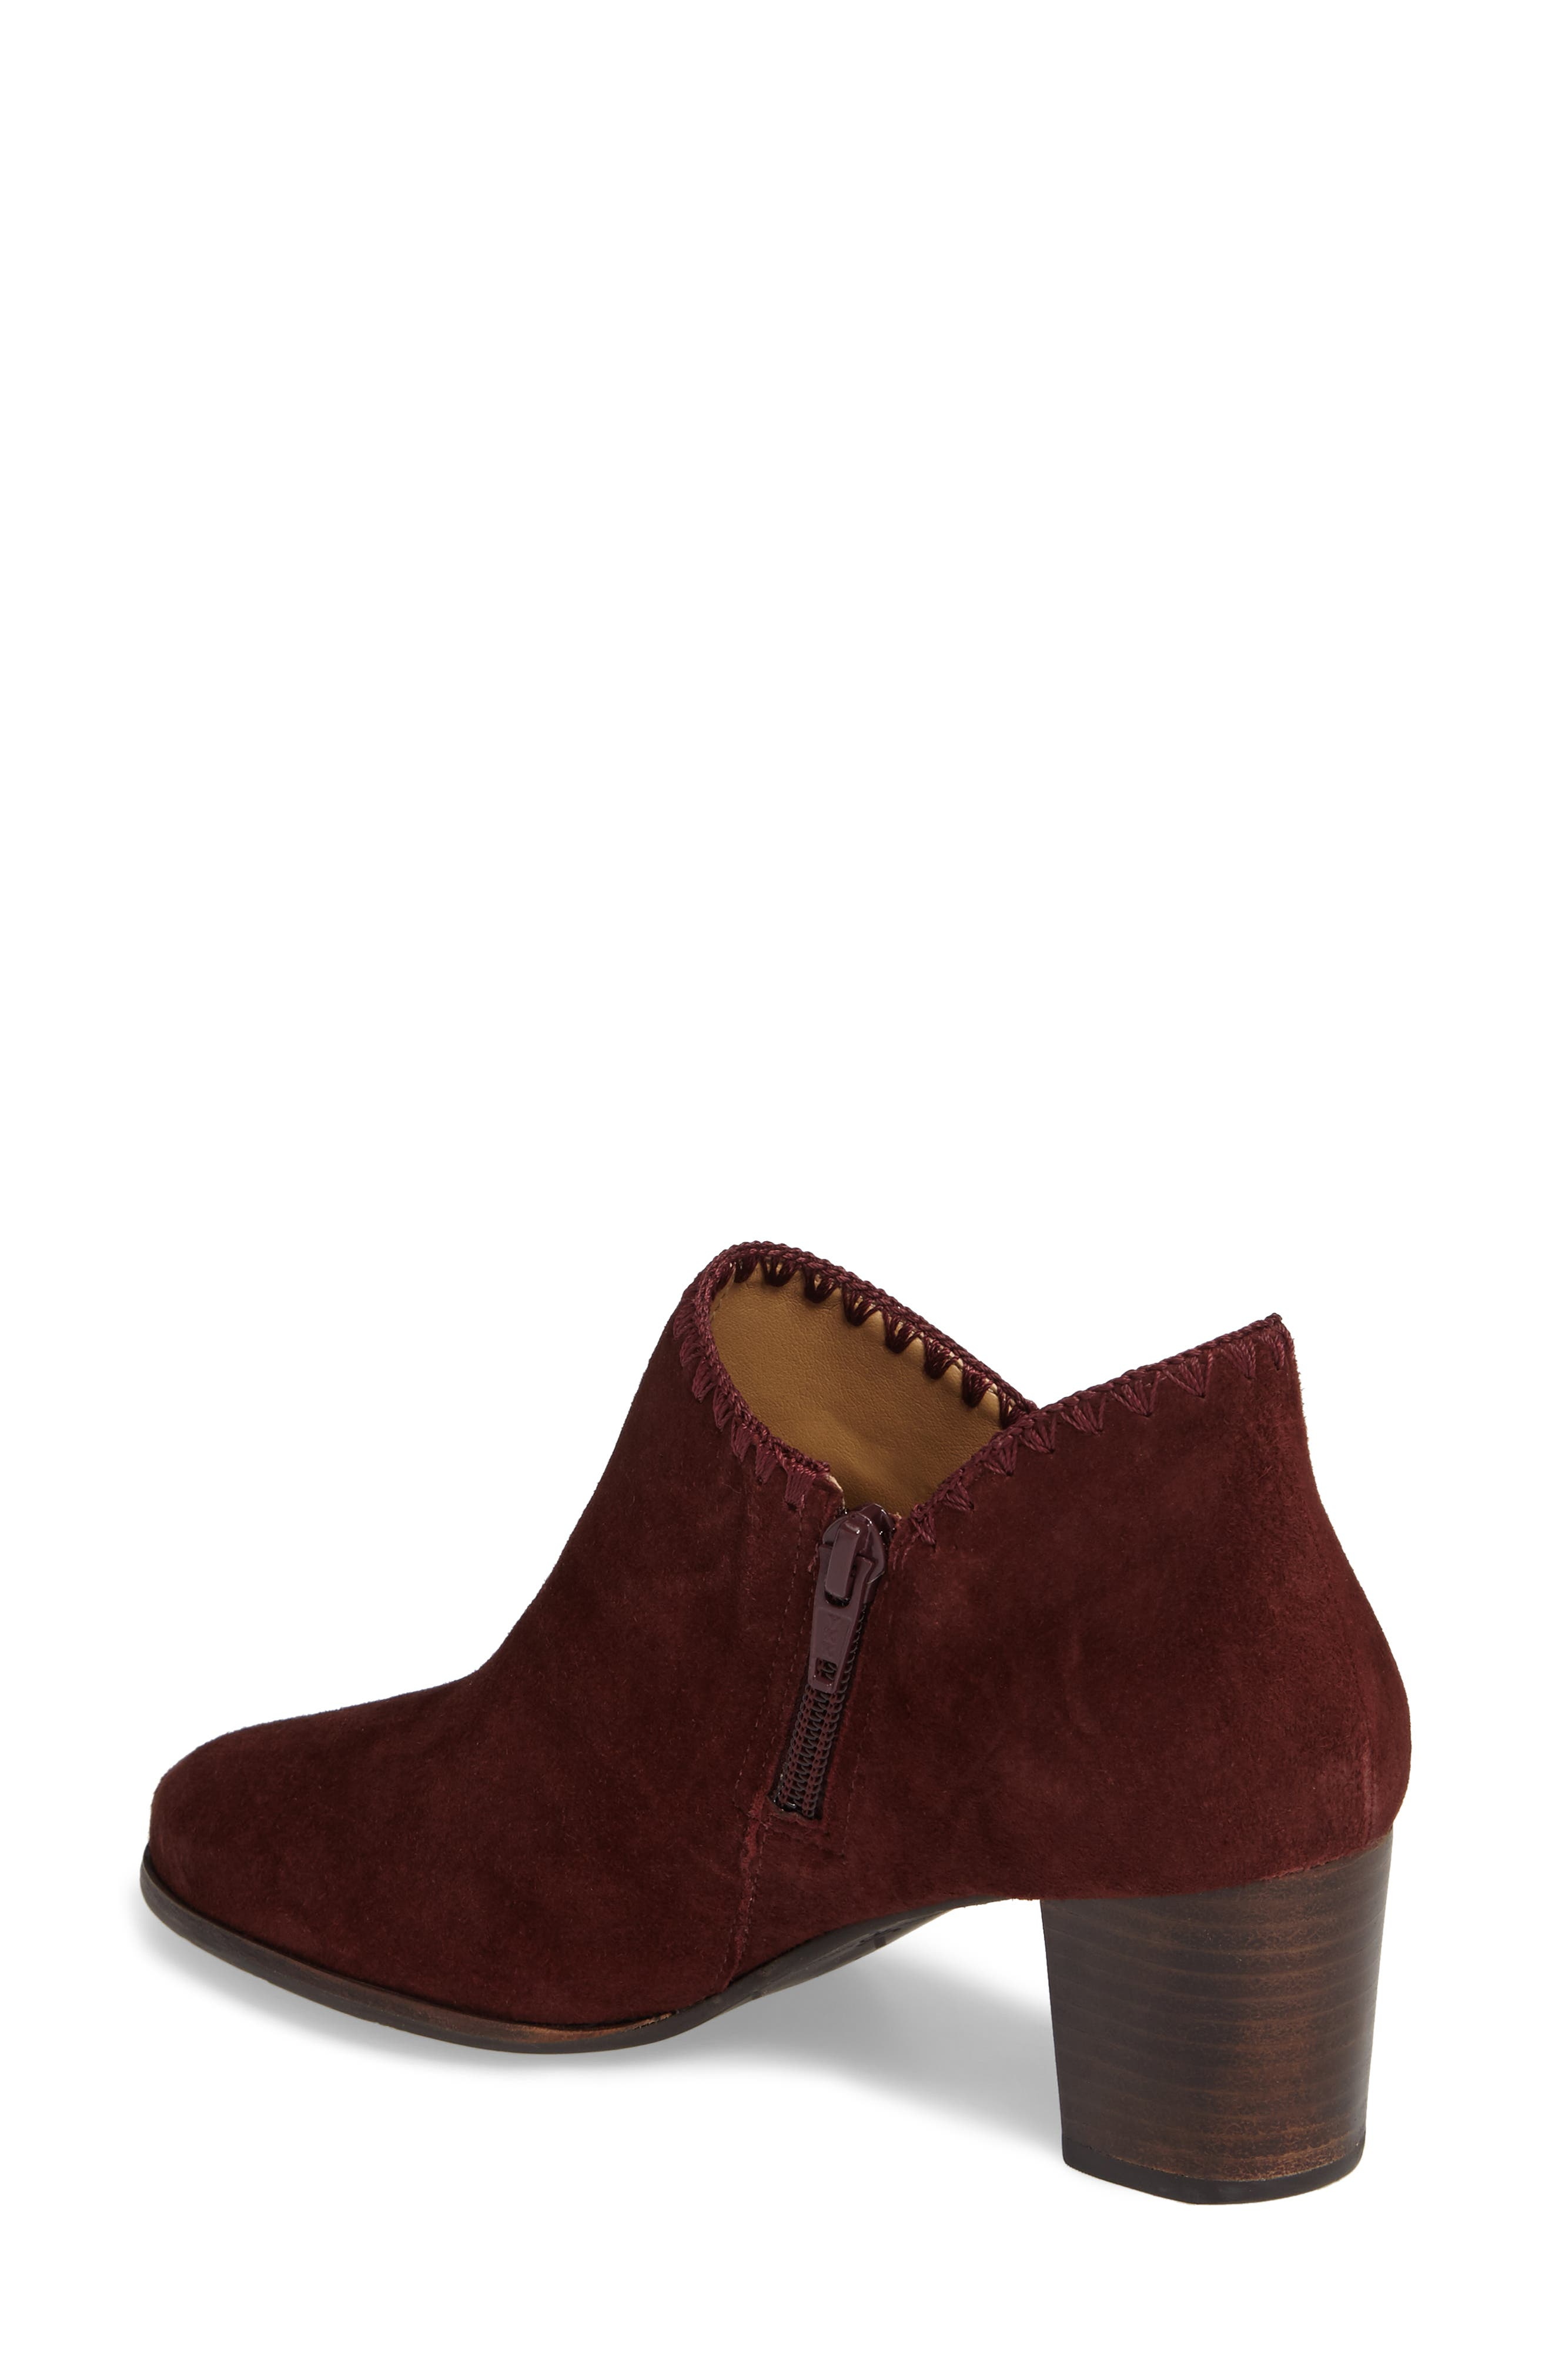 Marlow Bootie,                             Alternate thumbnail 12, color,